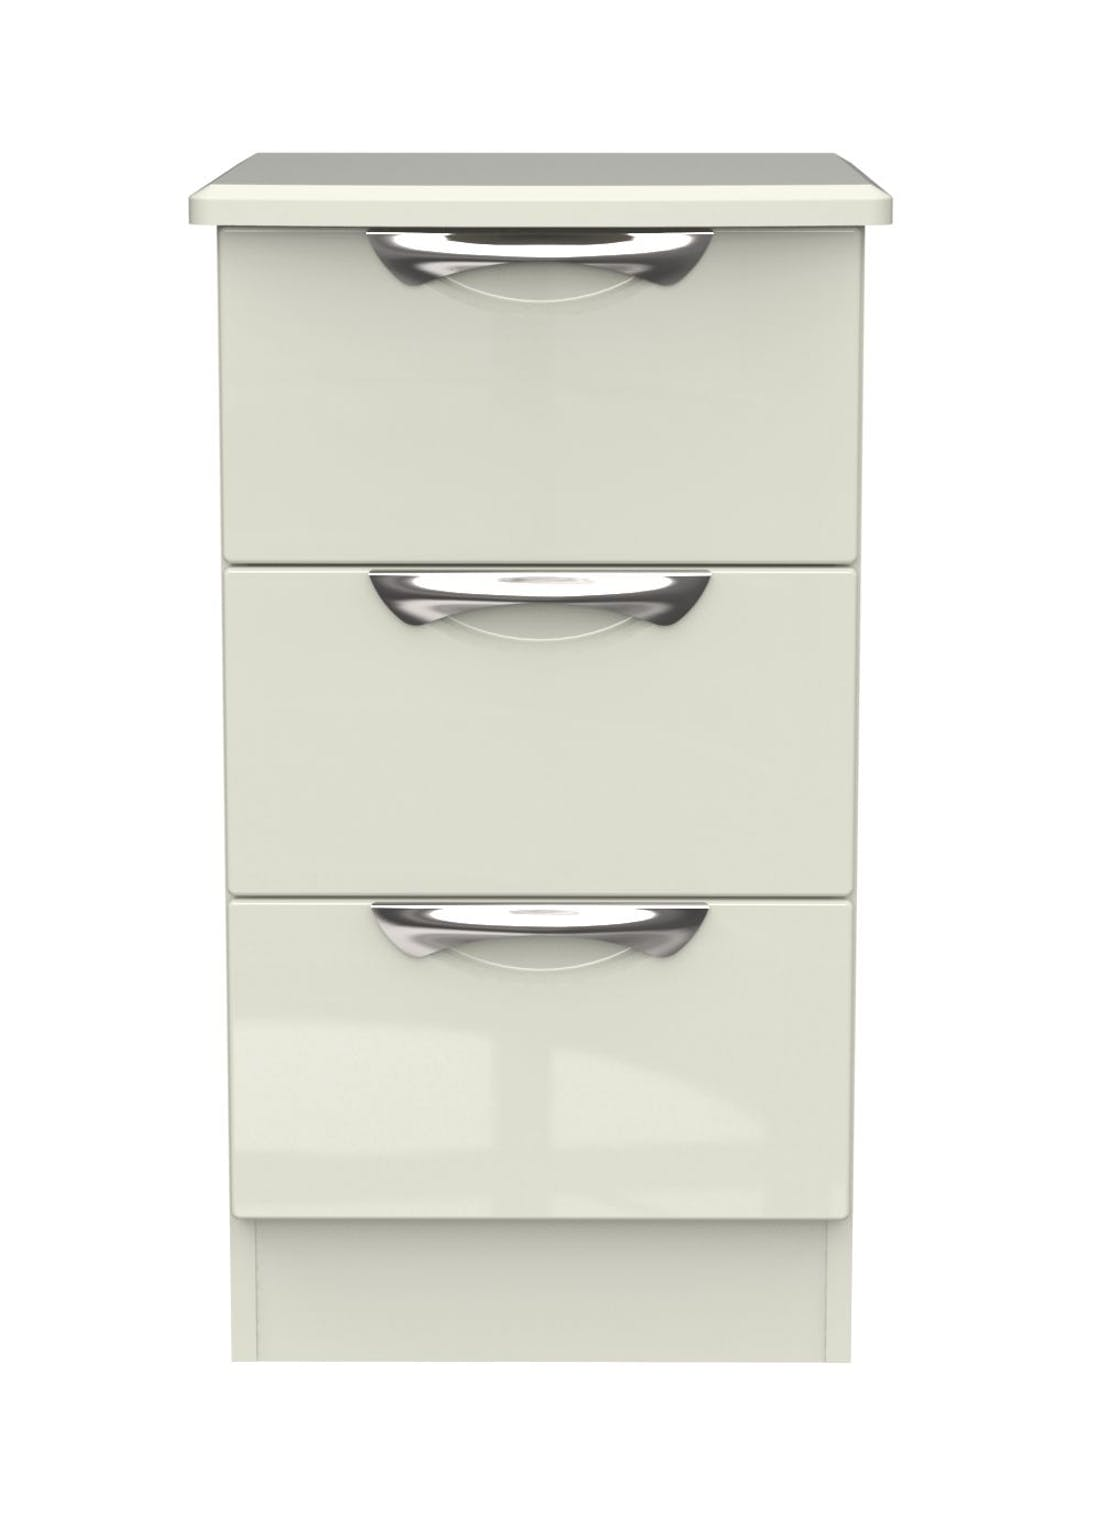 Swift Bordeaux 3 Drawer Bedside Table (69.5cm x 39.5cm x 41.5cm)